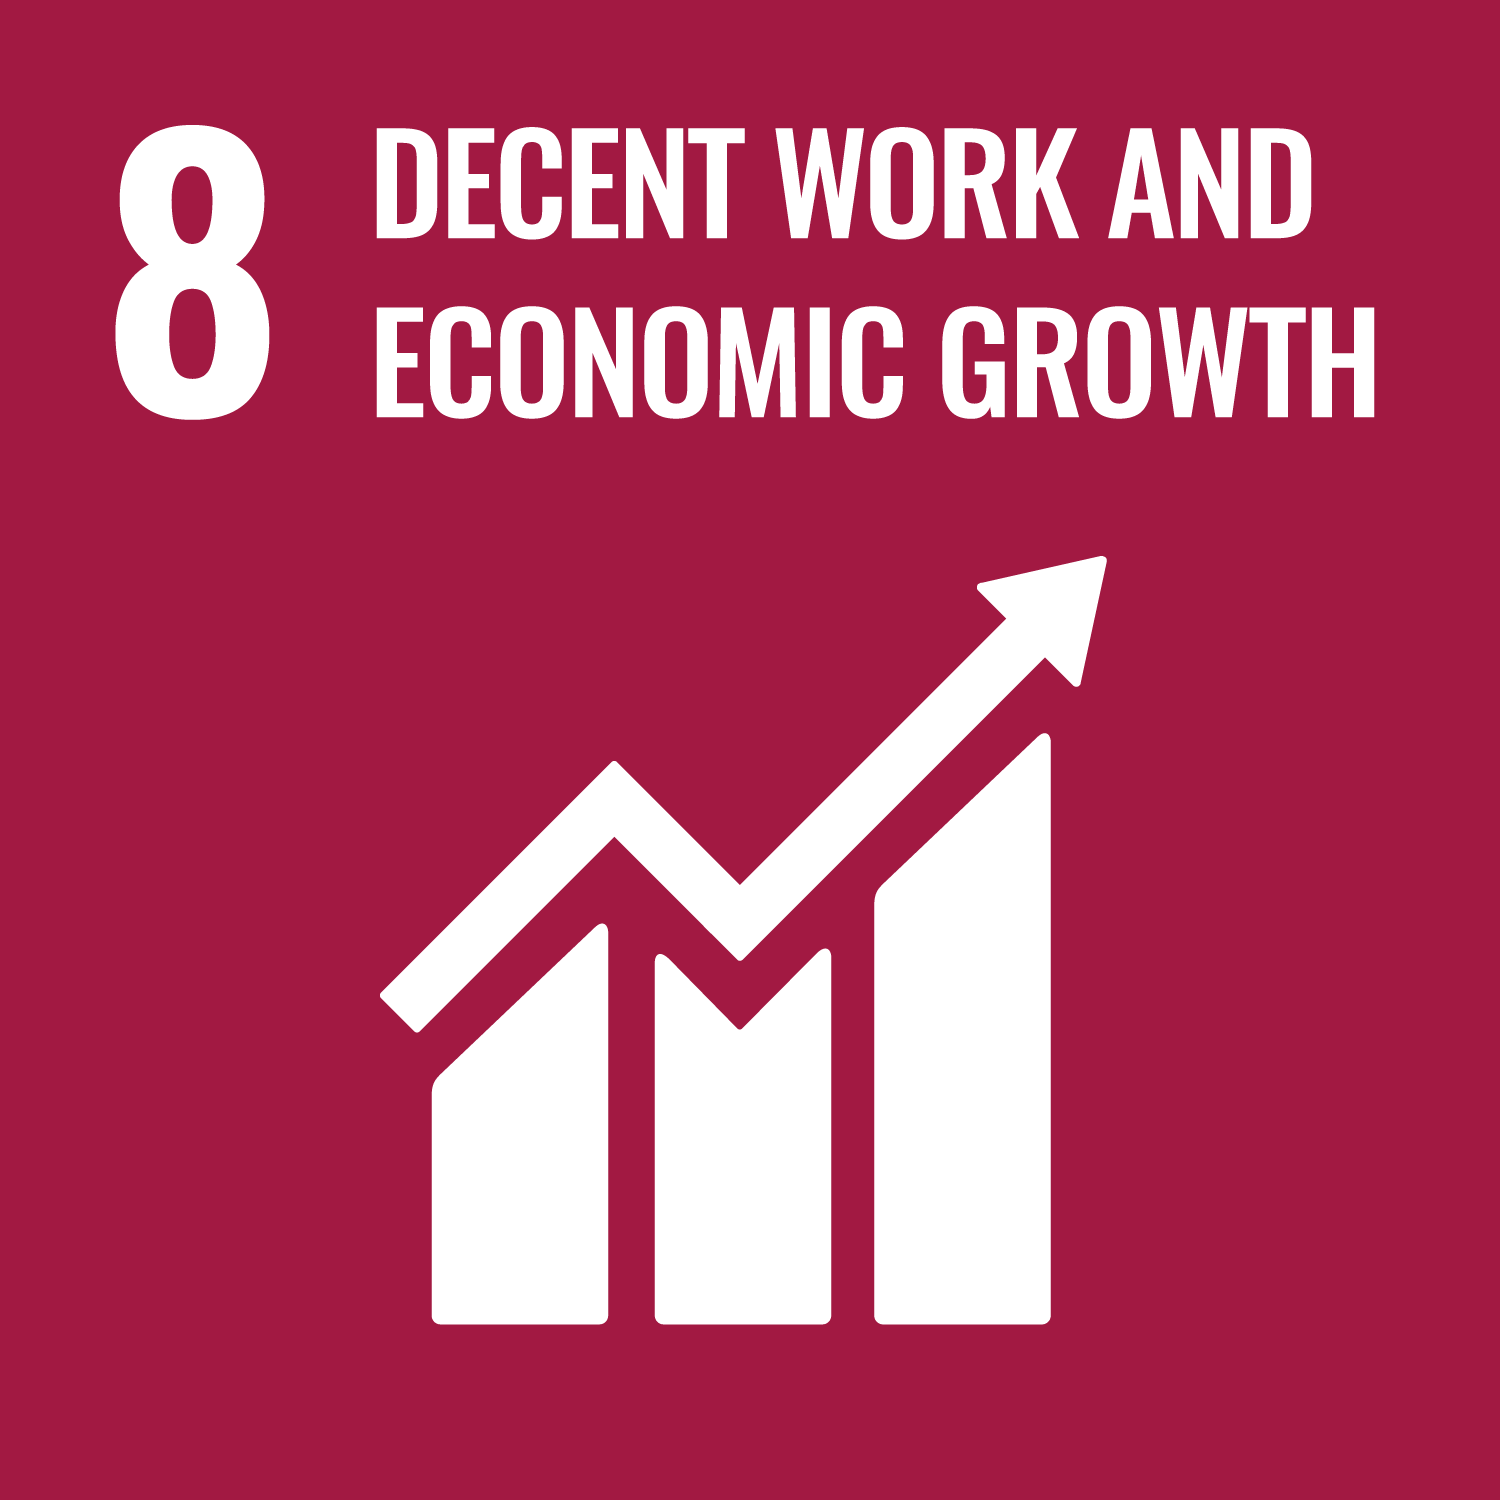 Decent Work And Economic Growth - UN Sustainable Development Goal 8